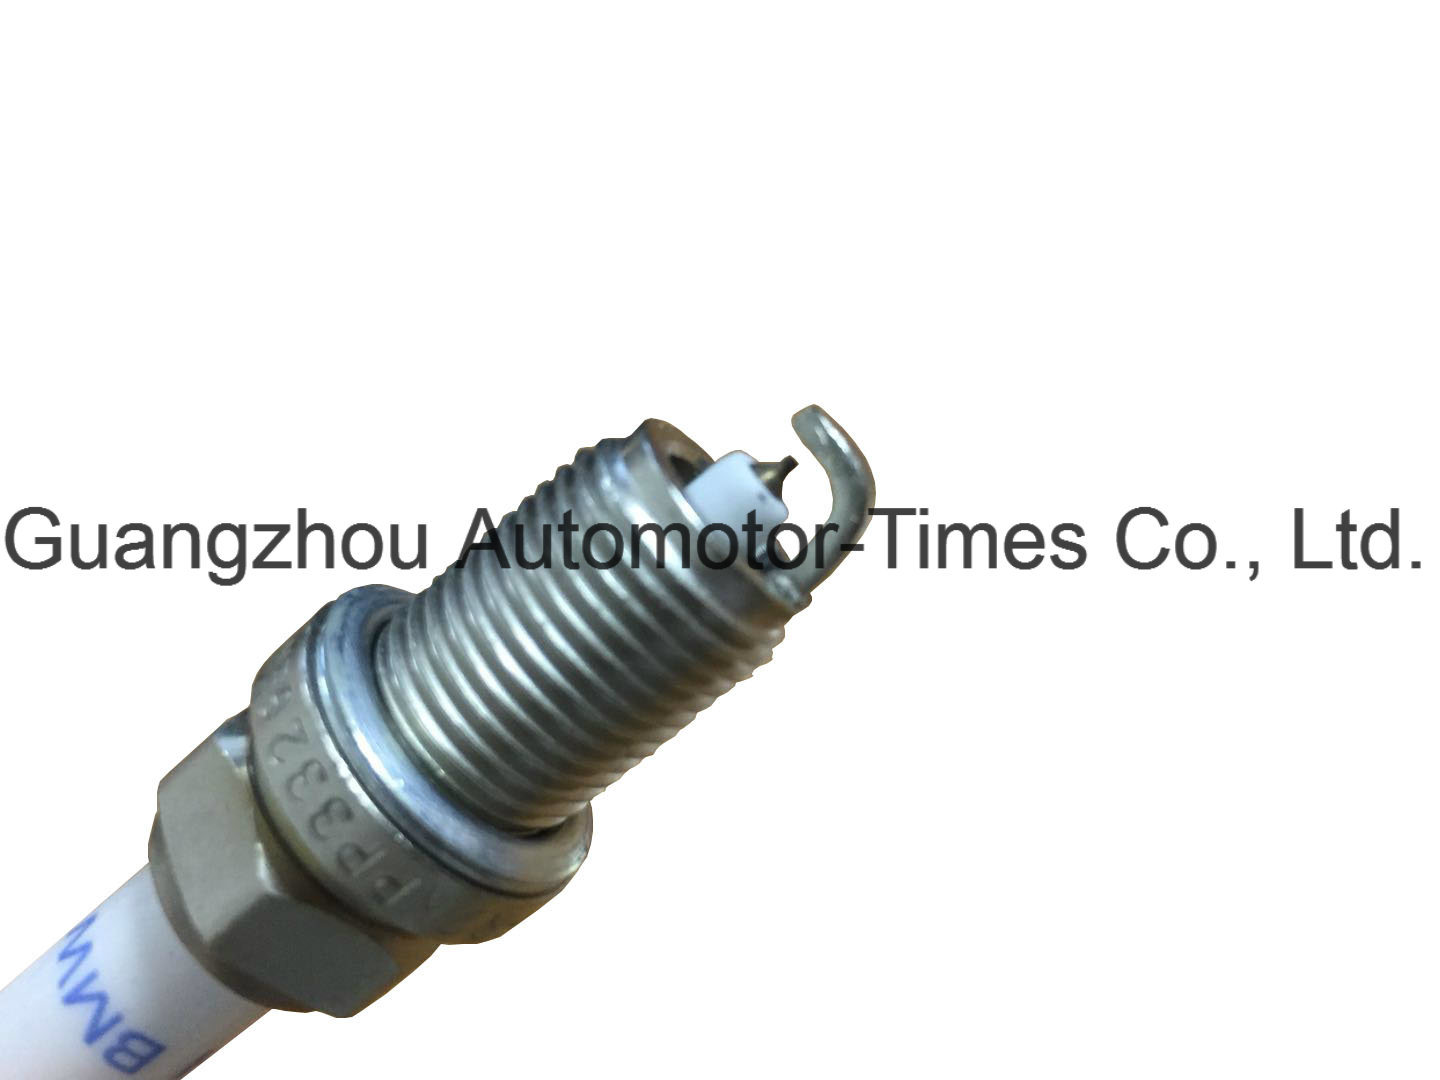 5b4757487cc Wholesale Car Iridium Spark Plug 12122158252 12120032134 12120032135  12127526799 4294 Fr7kpp332